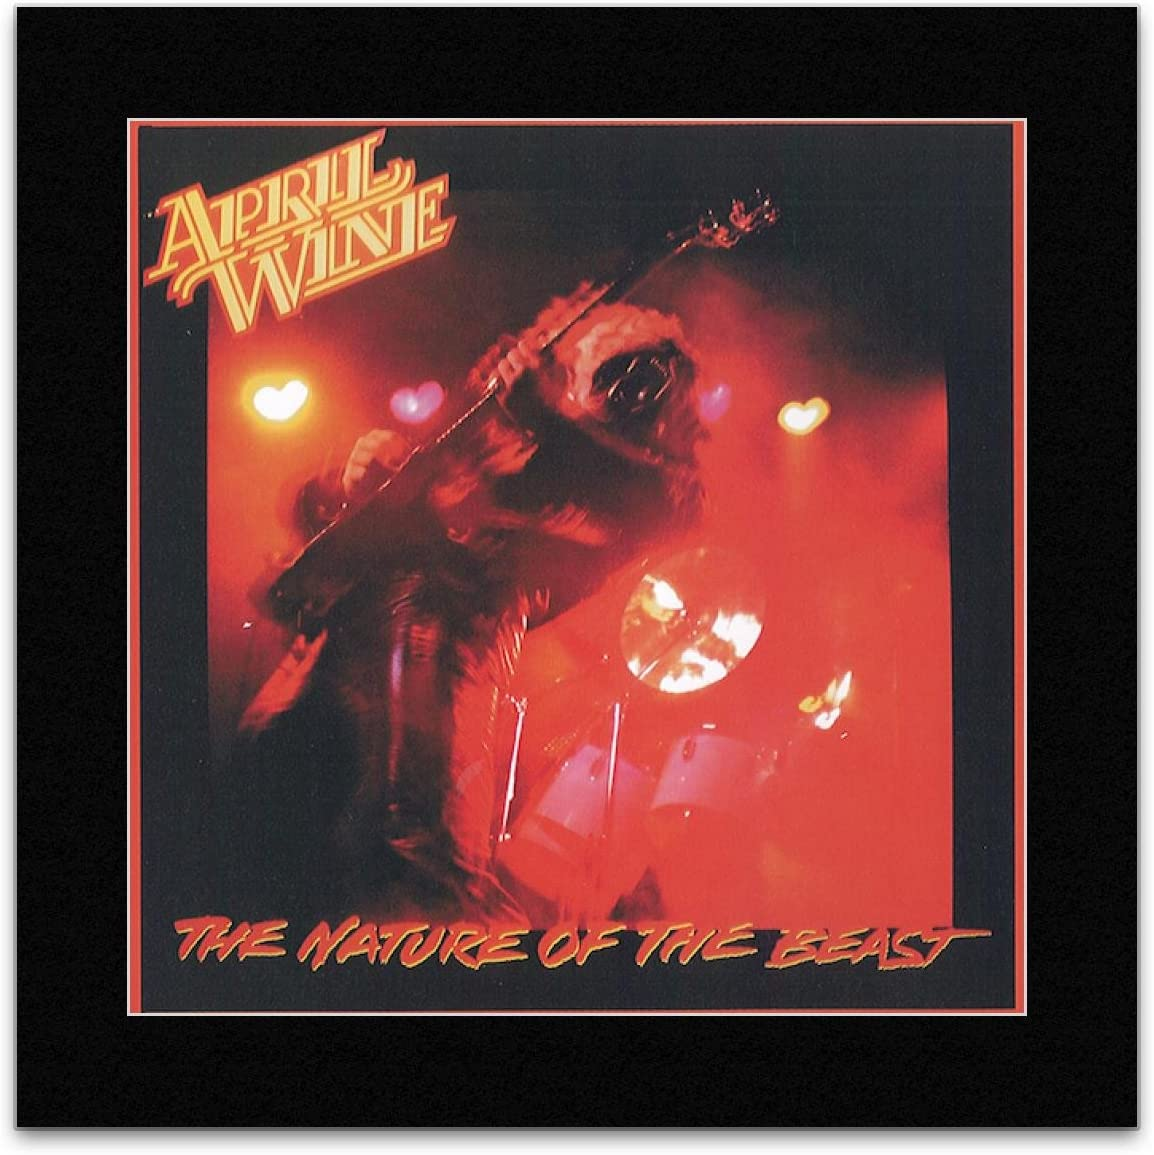 Stick It On Your Wall April Wine - The Nature of The Beast Mini Poster - 18.6x18.6cm